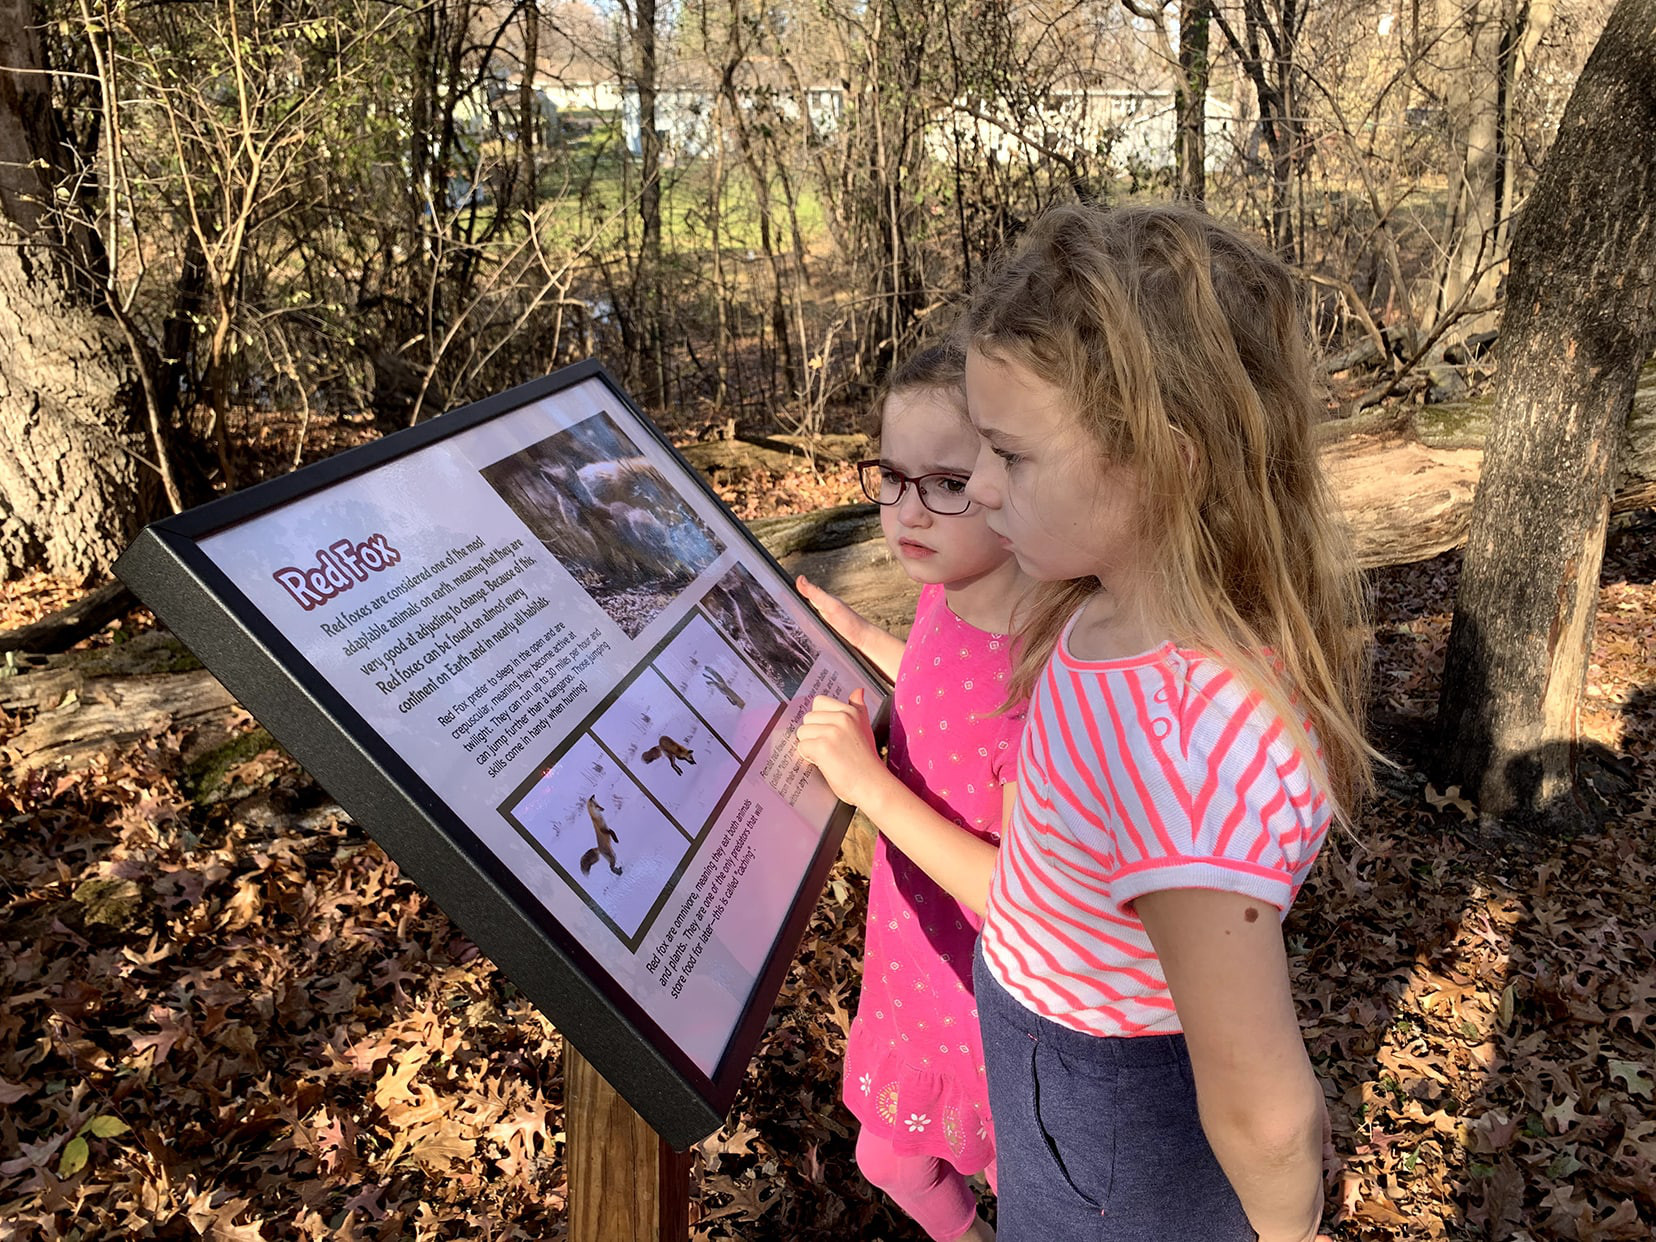 Two young girls reading an interpretive nature sign in the woods.